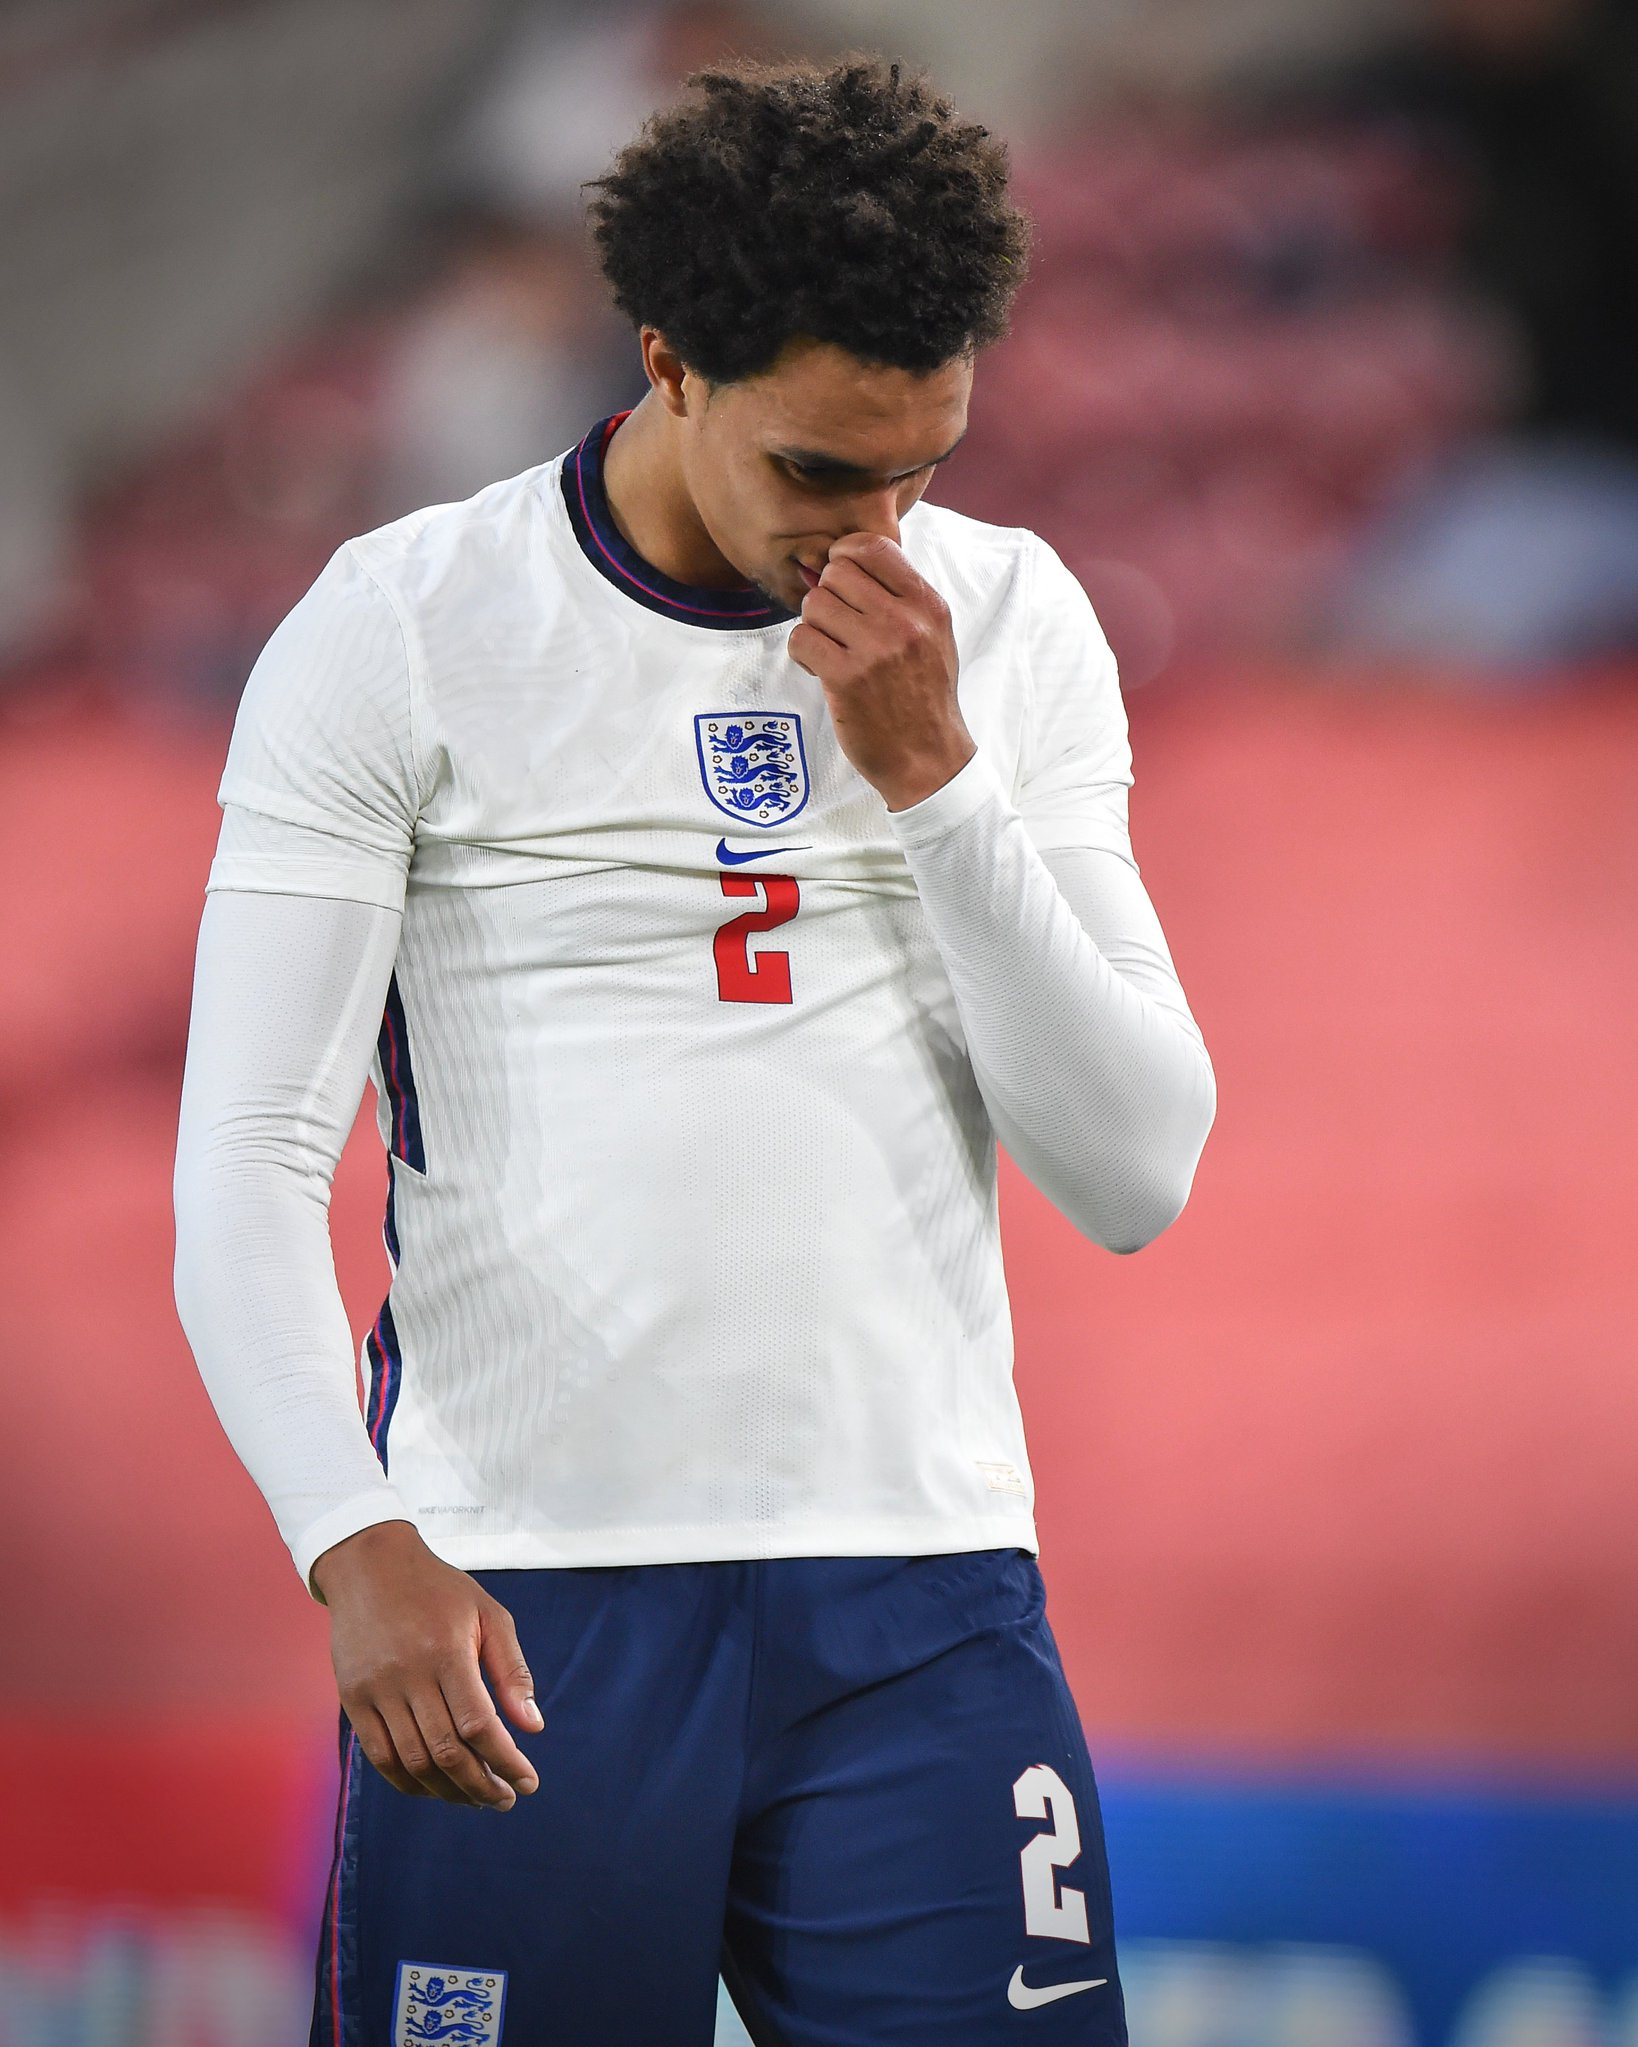 Liverpool Defender Alexander-Arnold Ruled Out Of Euro 2020